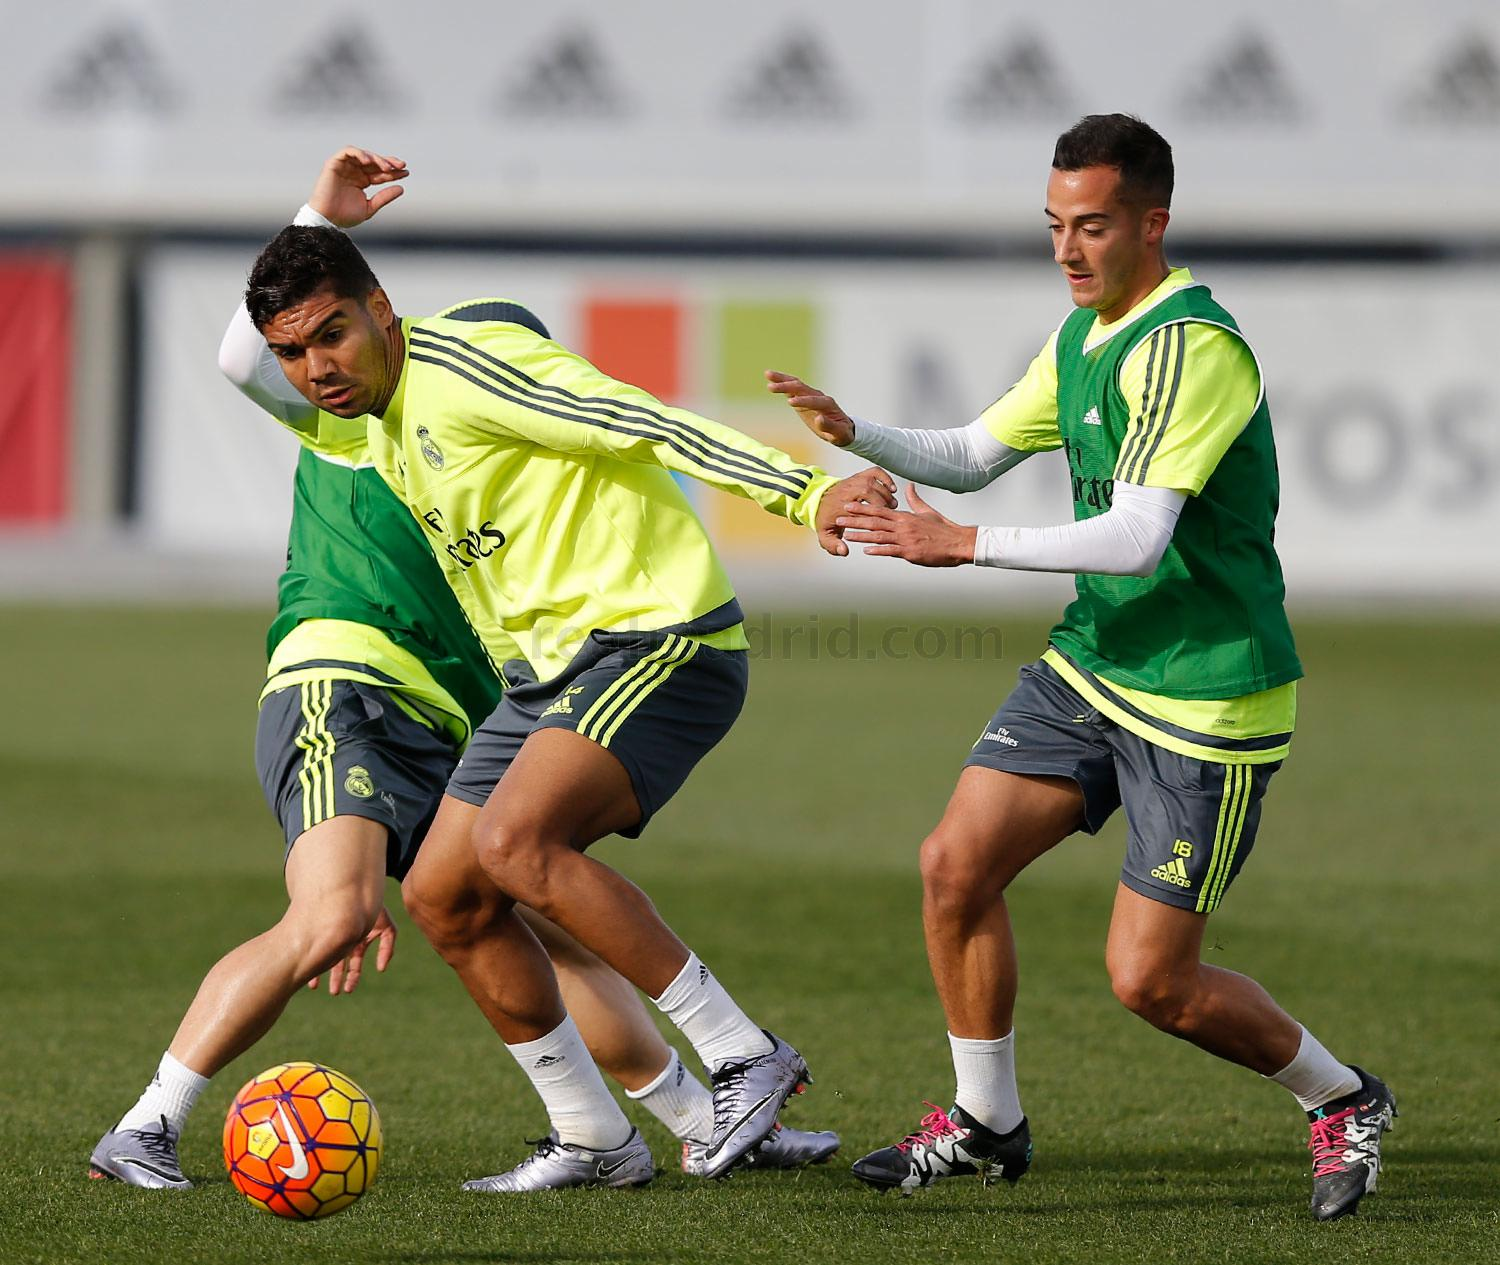 Real Madrid - Entrenamiento del Real Madrid - 17-12-2015